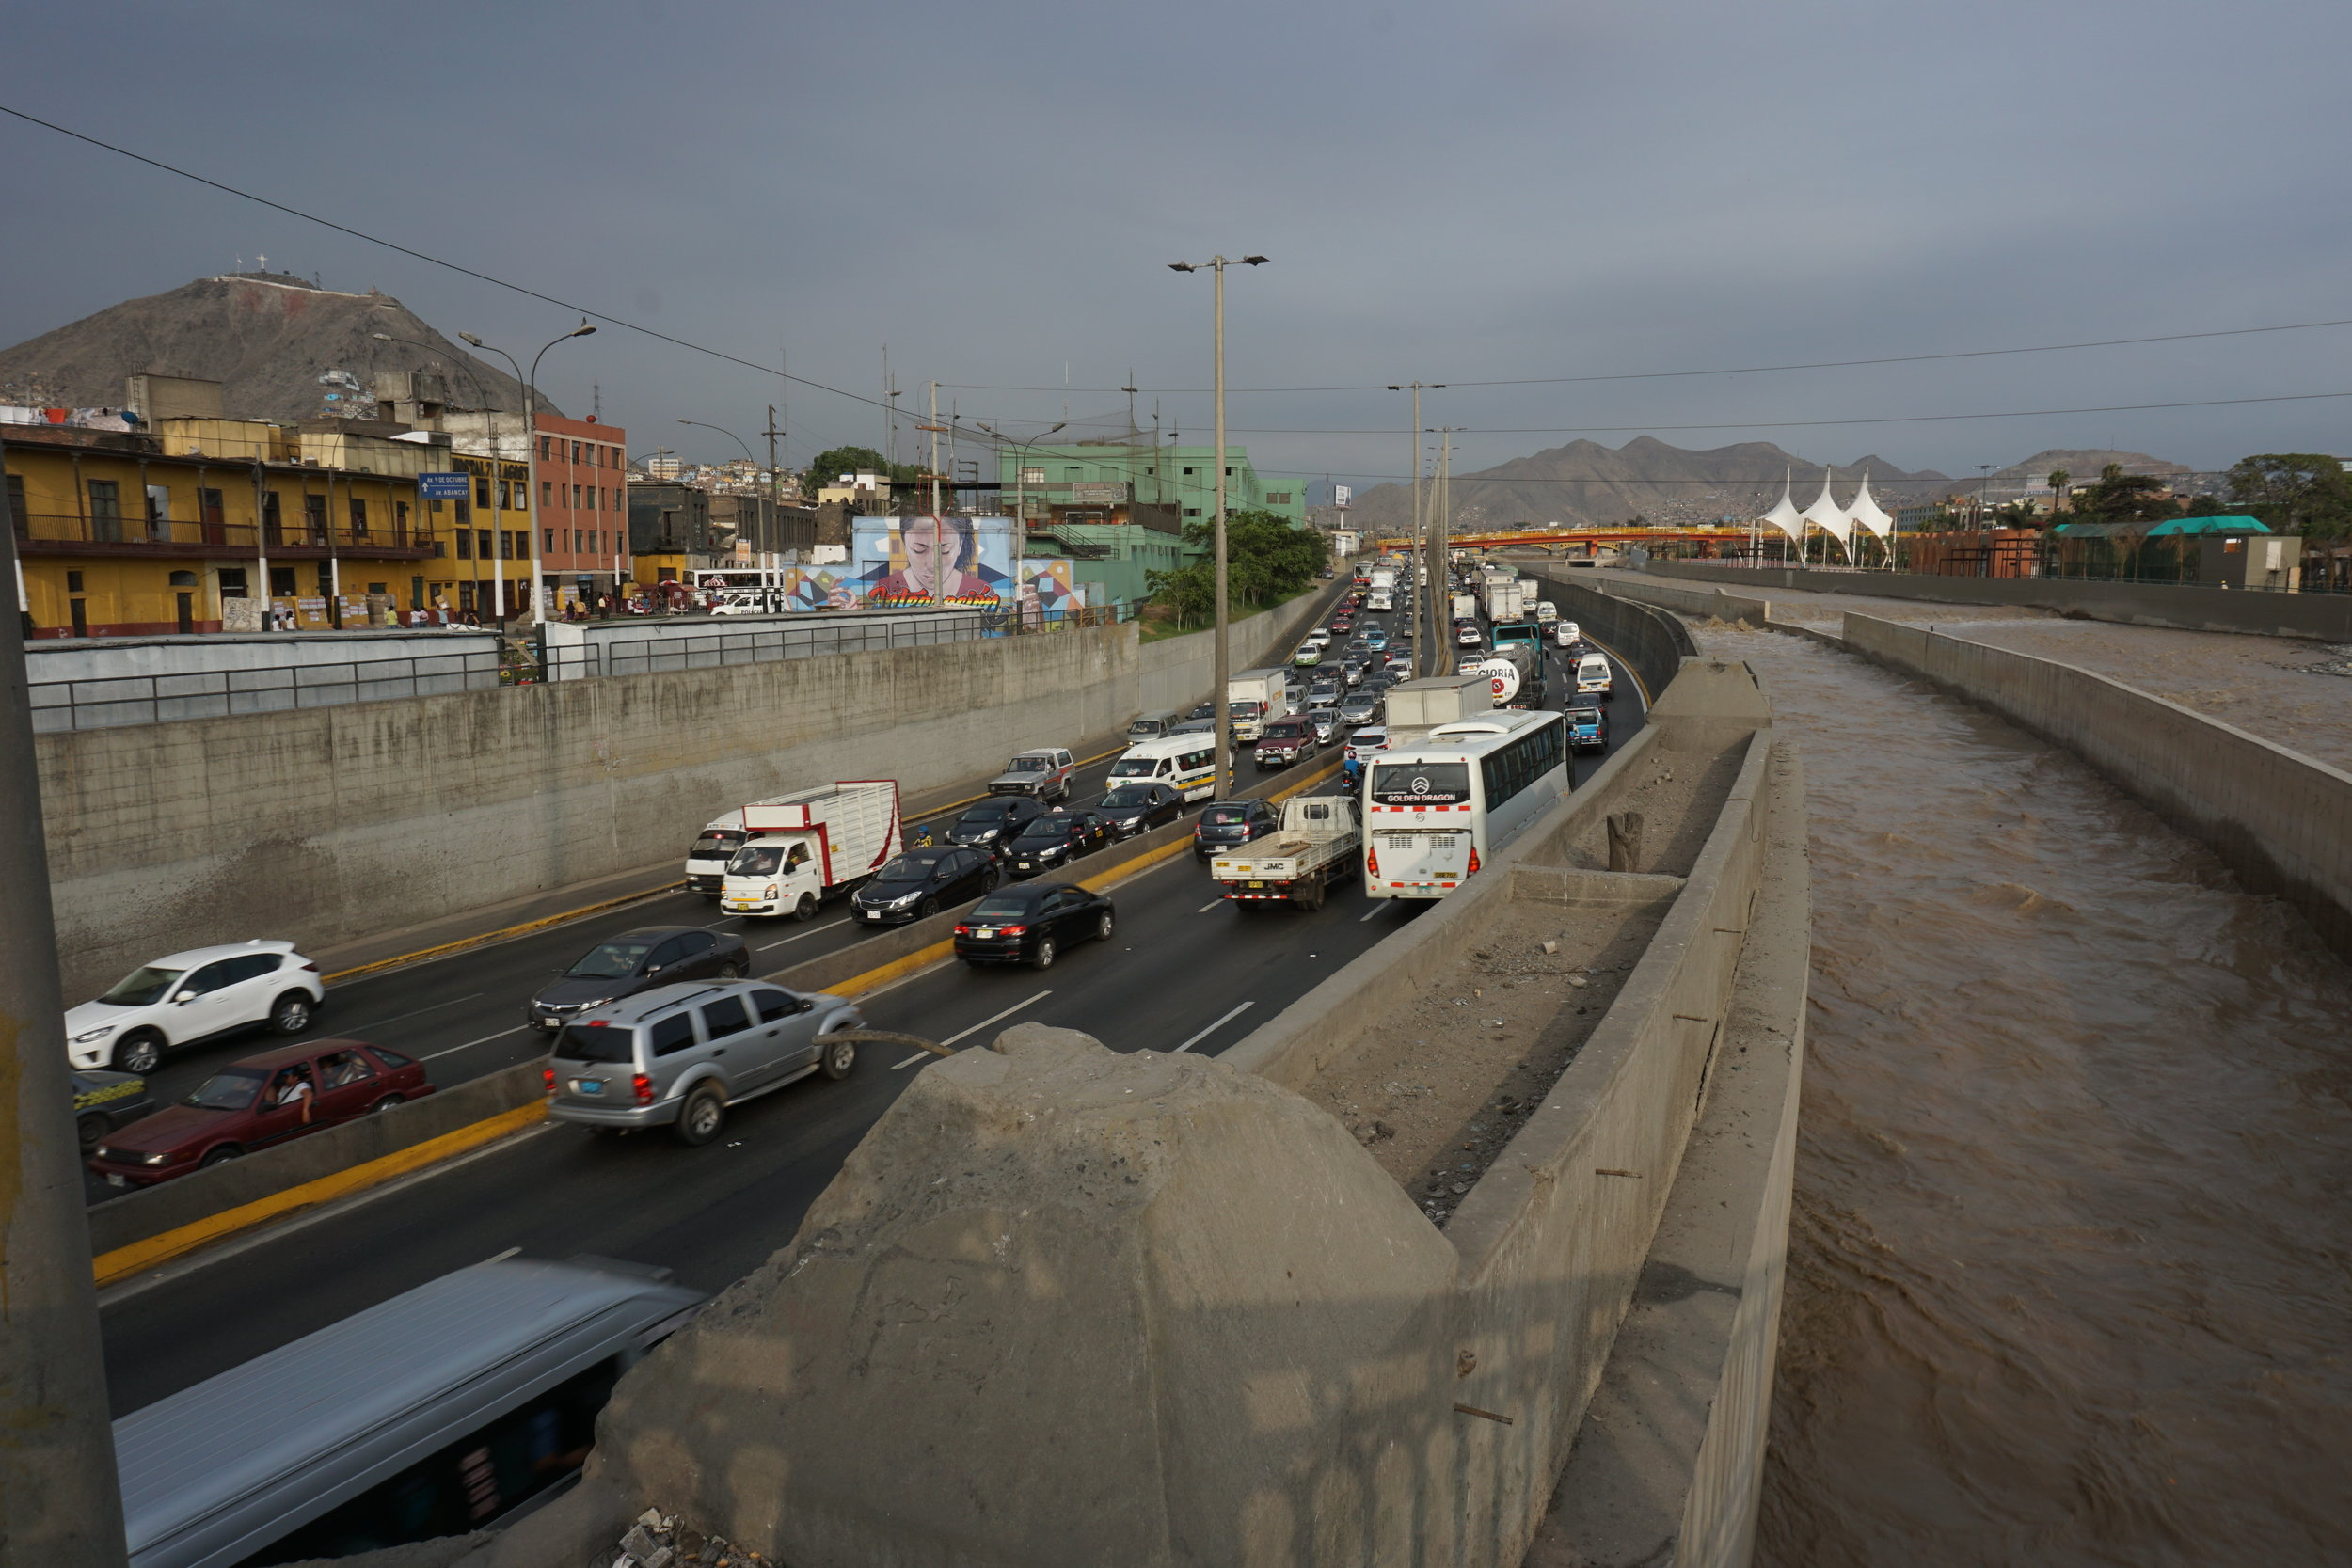 Just steps from the Plaza Mayor, a view of Lima's slums and highway from a bridge above the Rio Rimac.